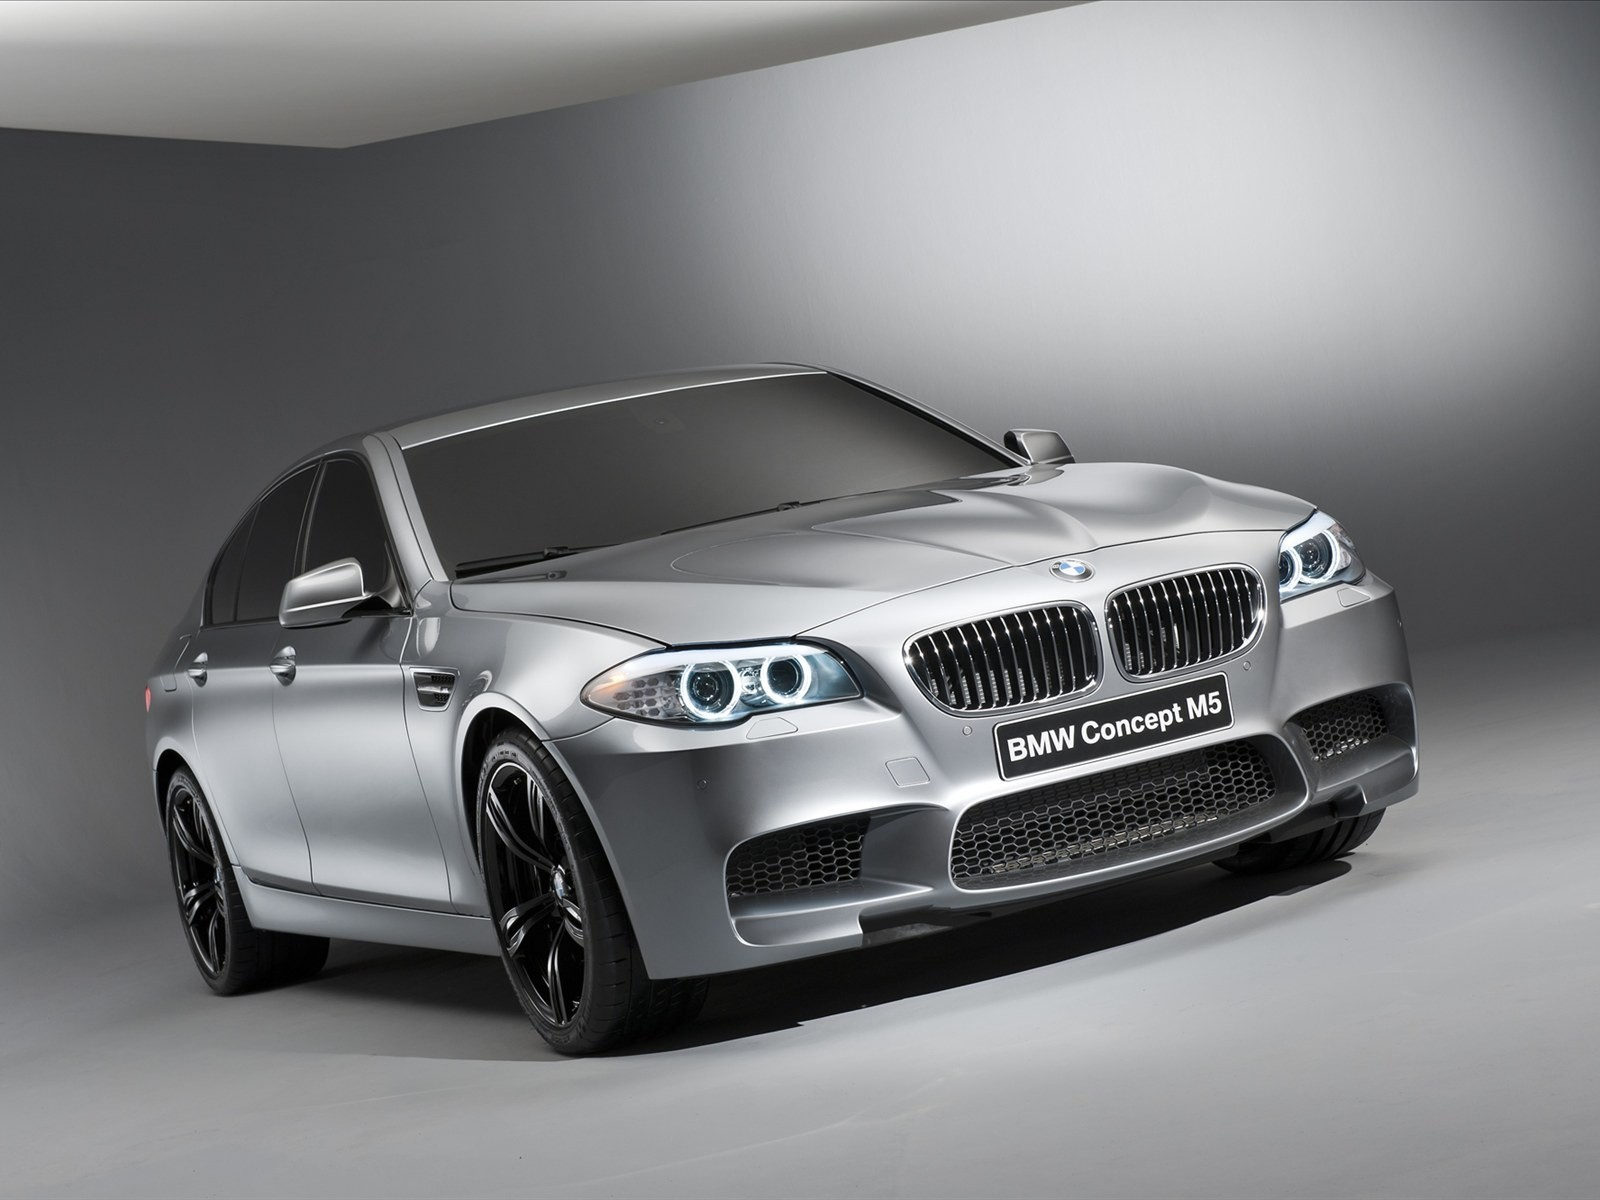 BMW cars concept cars HD Wallpaper